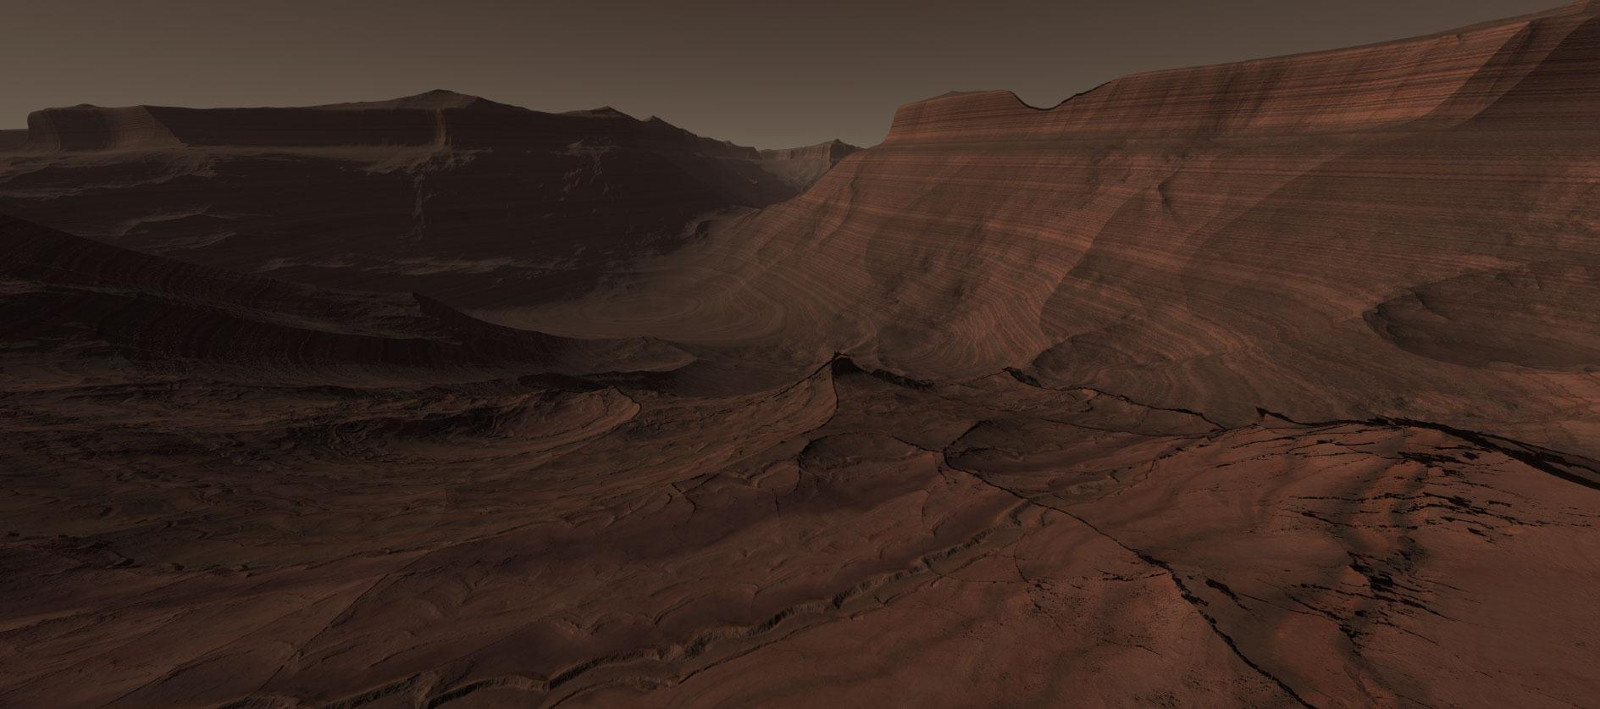 Doubts About Some Water on Mars